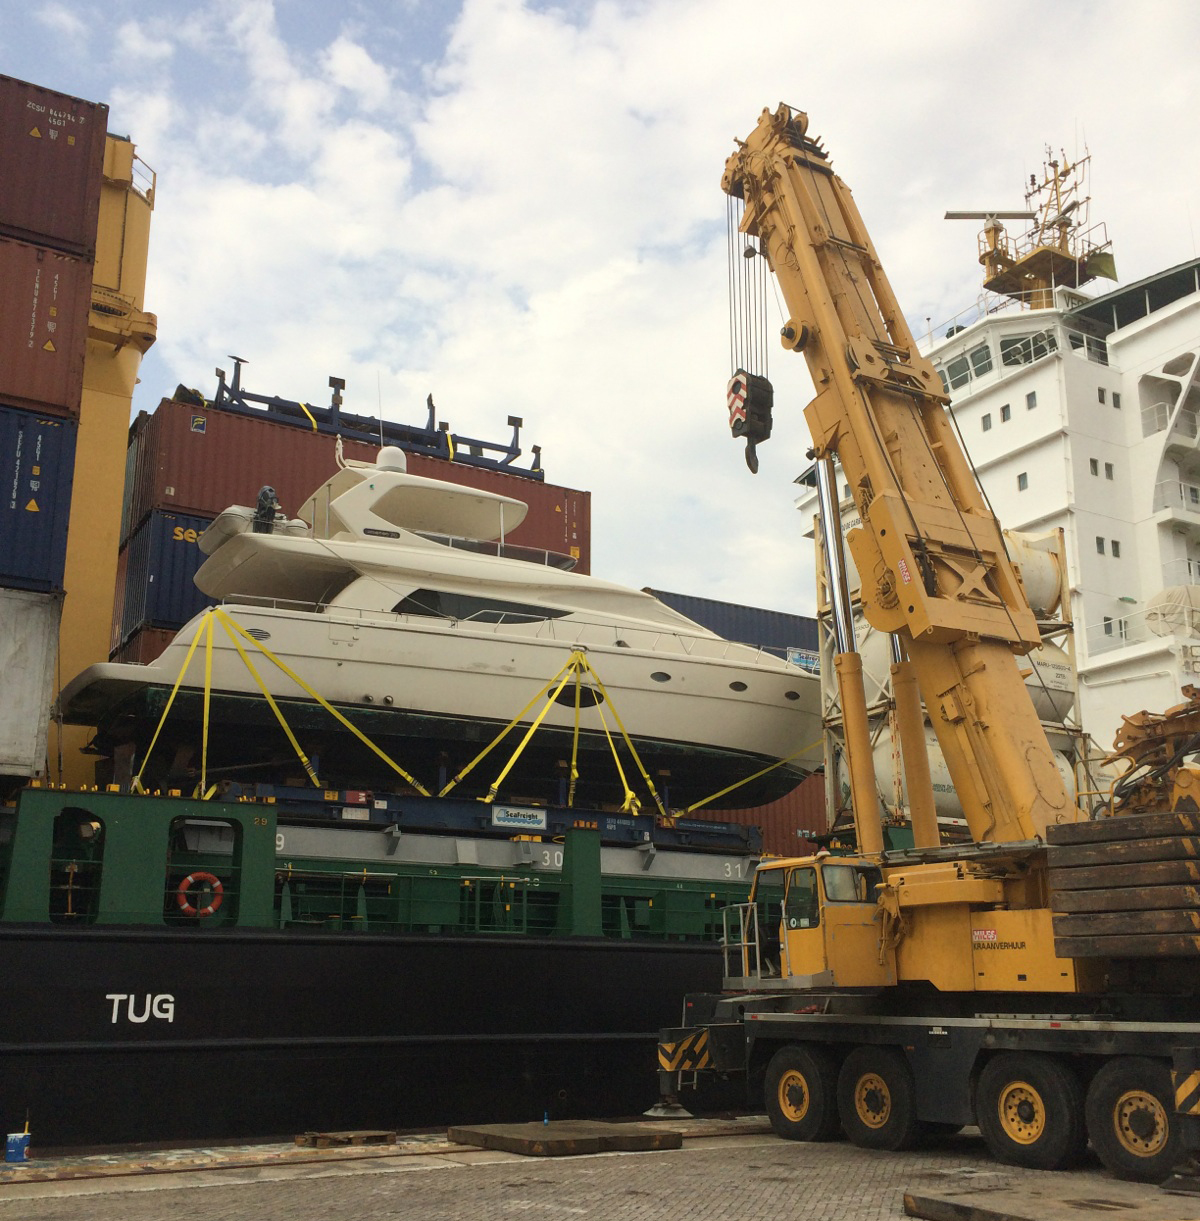 yacht transport company, florida, boat shipping service